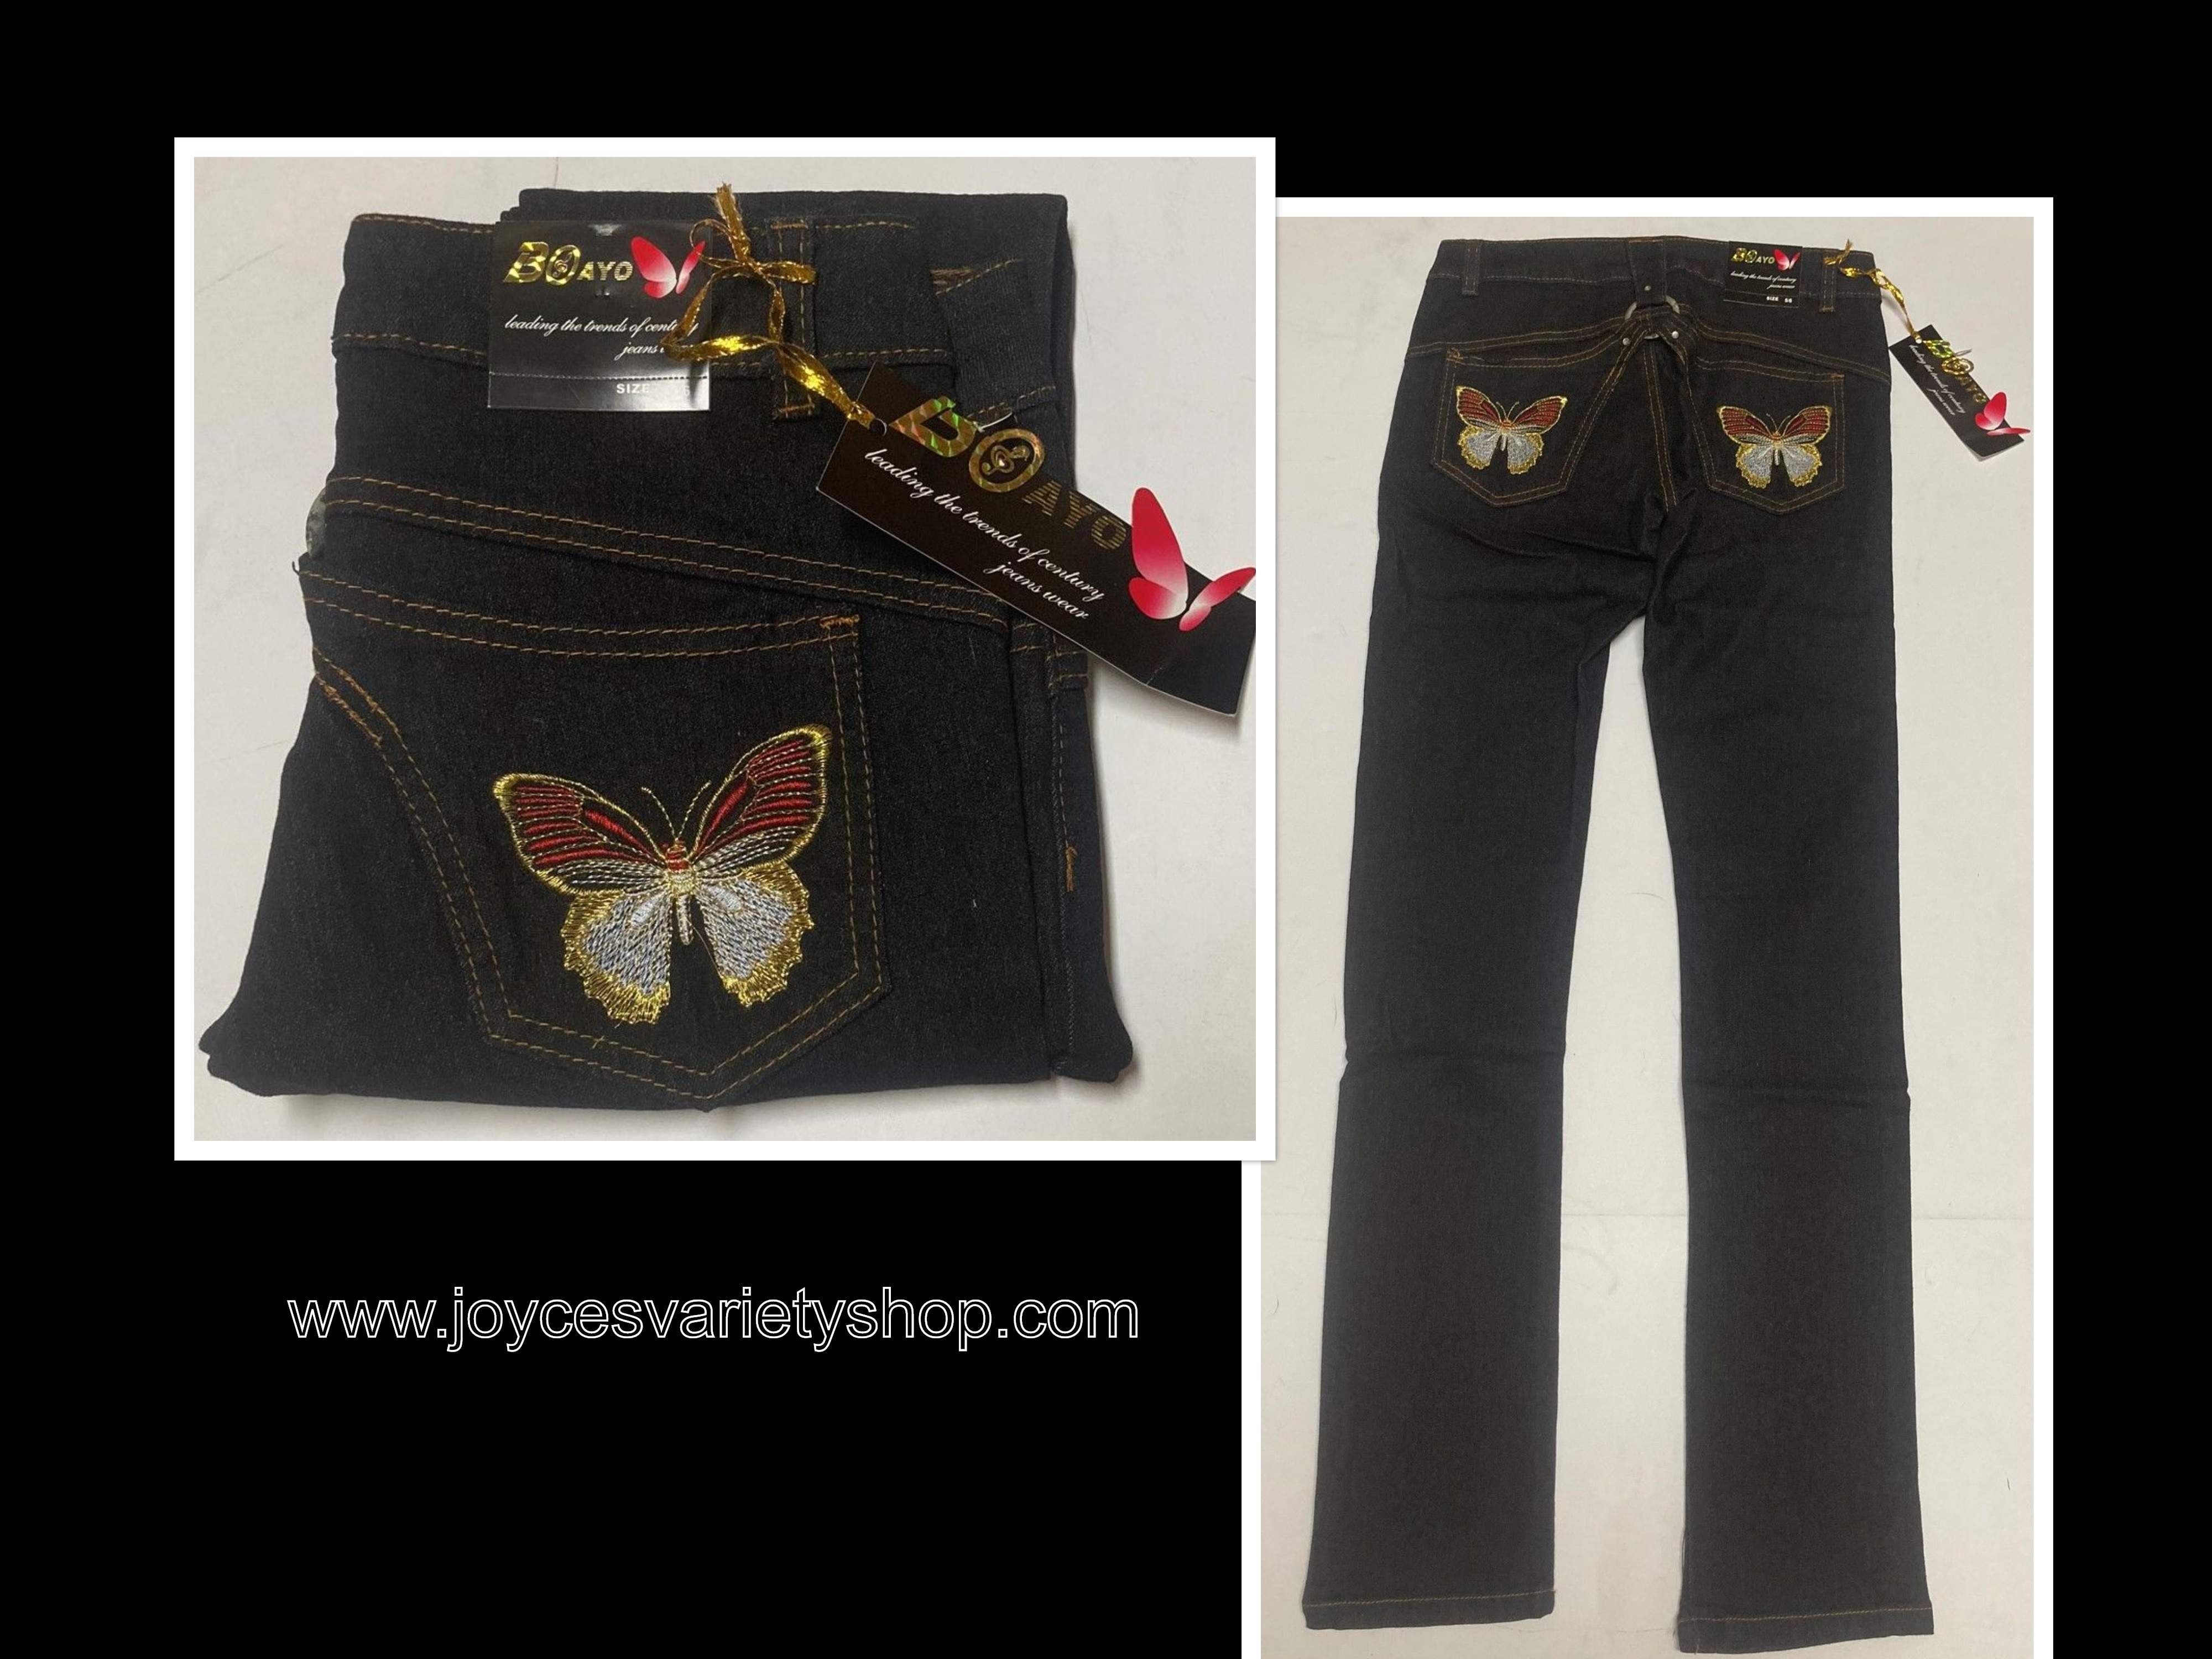 Boayo Black Jeans Indigo Stretch Red Butterfly Design Various Sizes